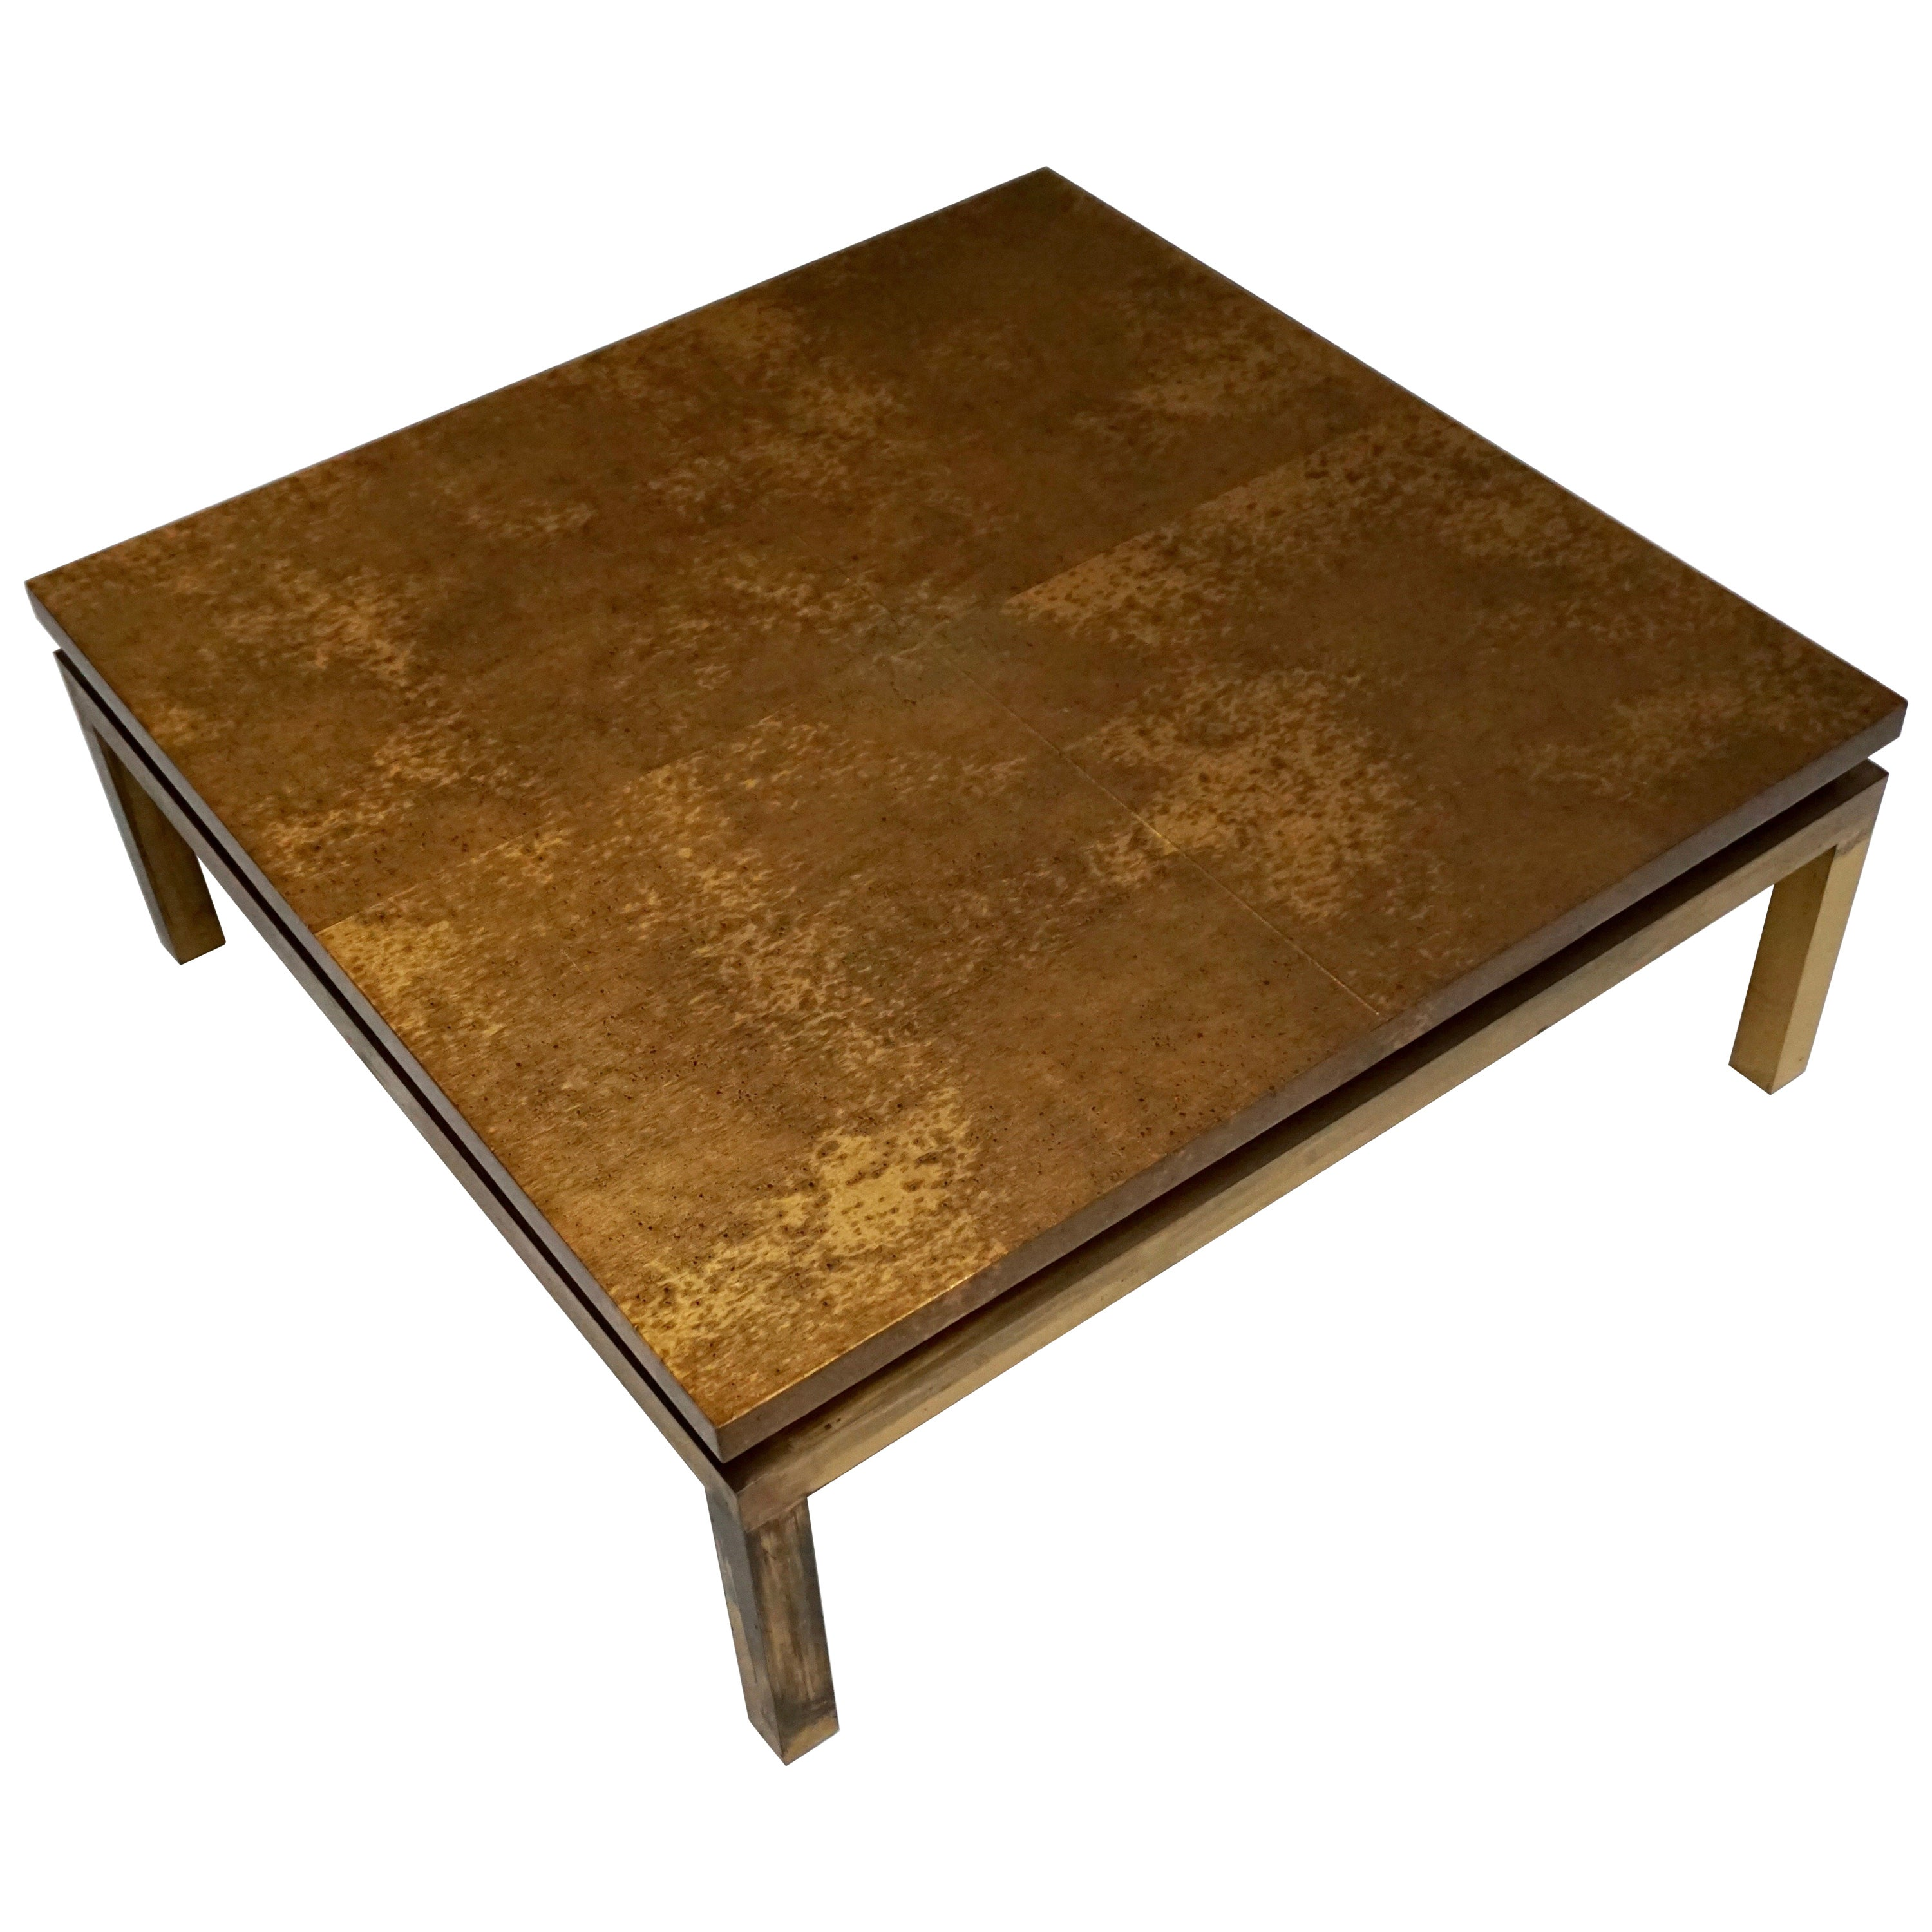 Italian Mid-Century Modern Gold Coffee Table